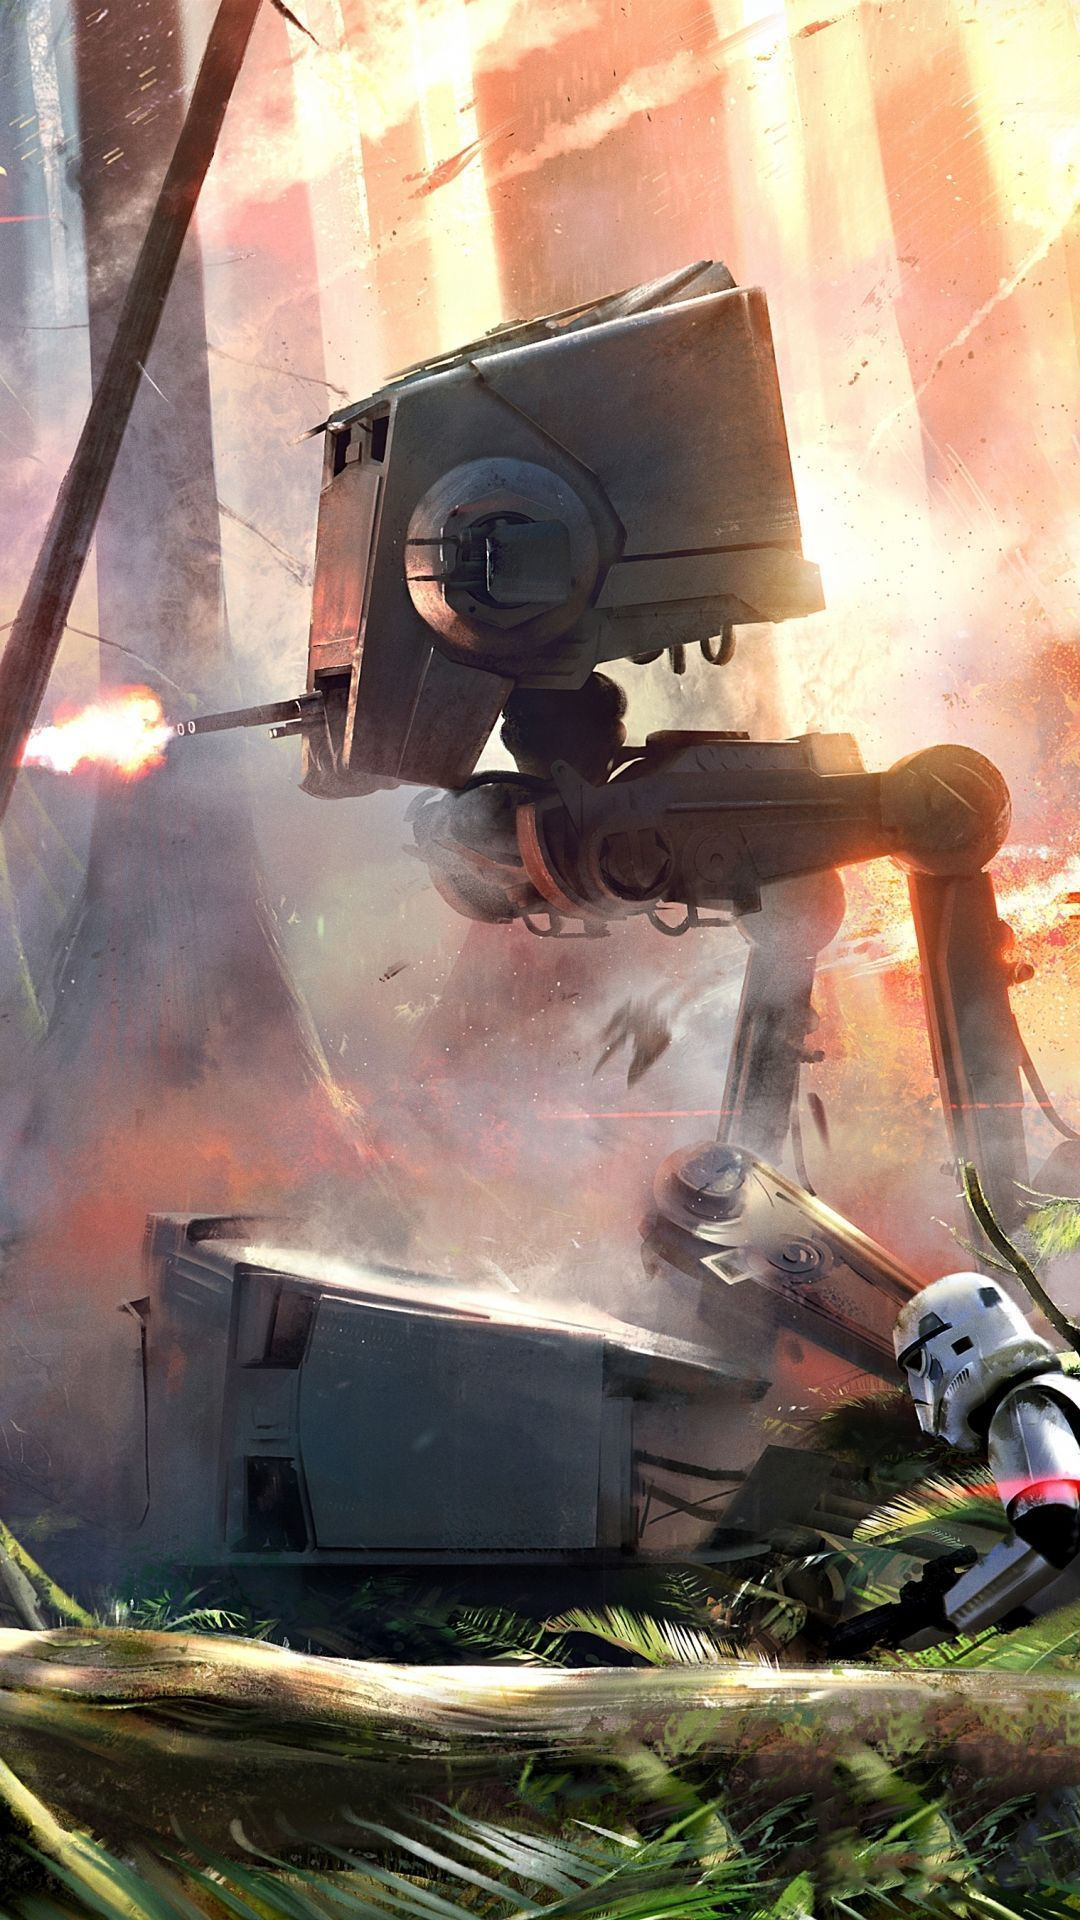 Star Wars Battlefront Wallpaper Android Download android